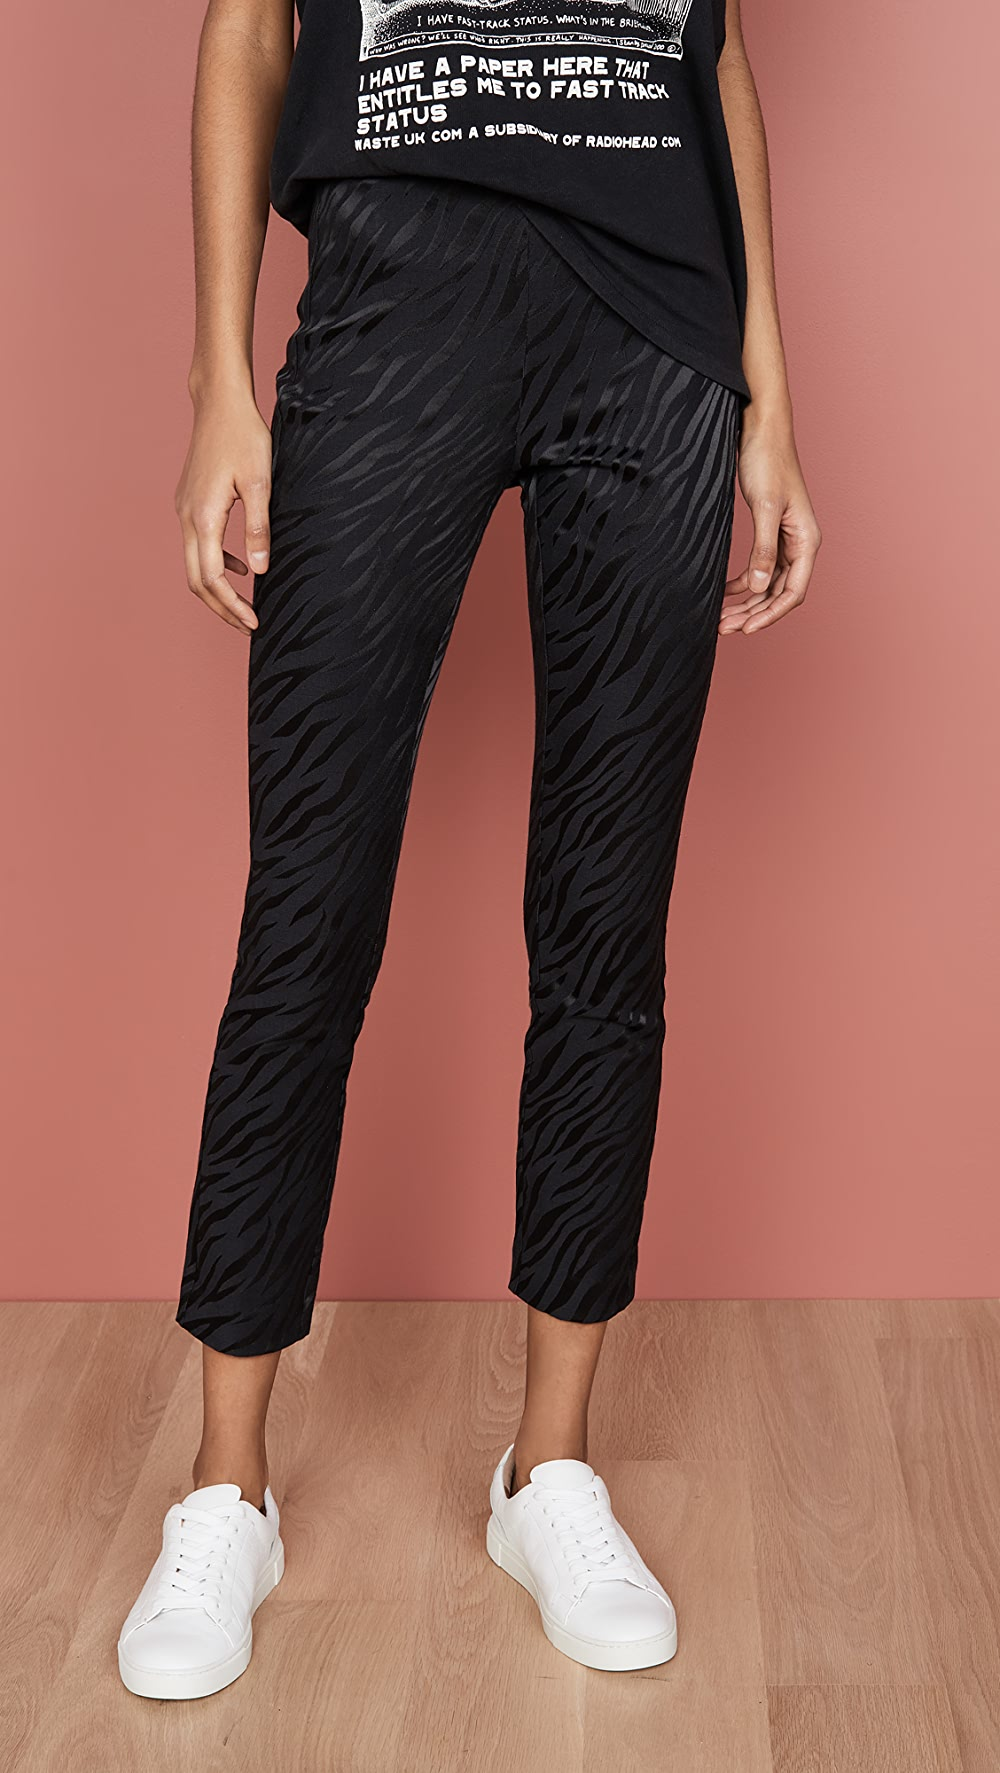 Reasonable Rag & Bone - Zebra Simone Pants Hot Sale 50-70% OFF